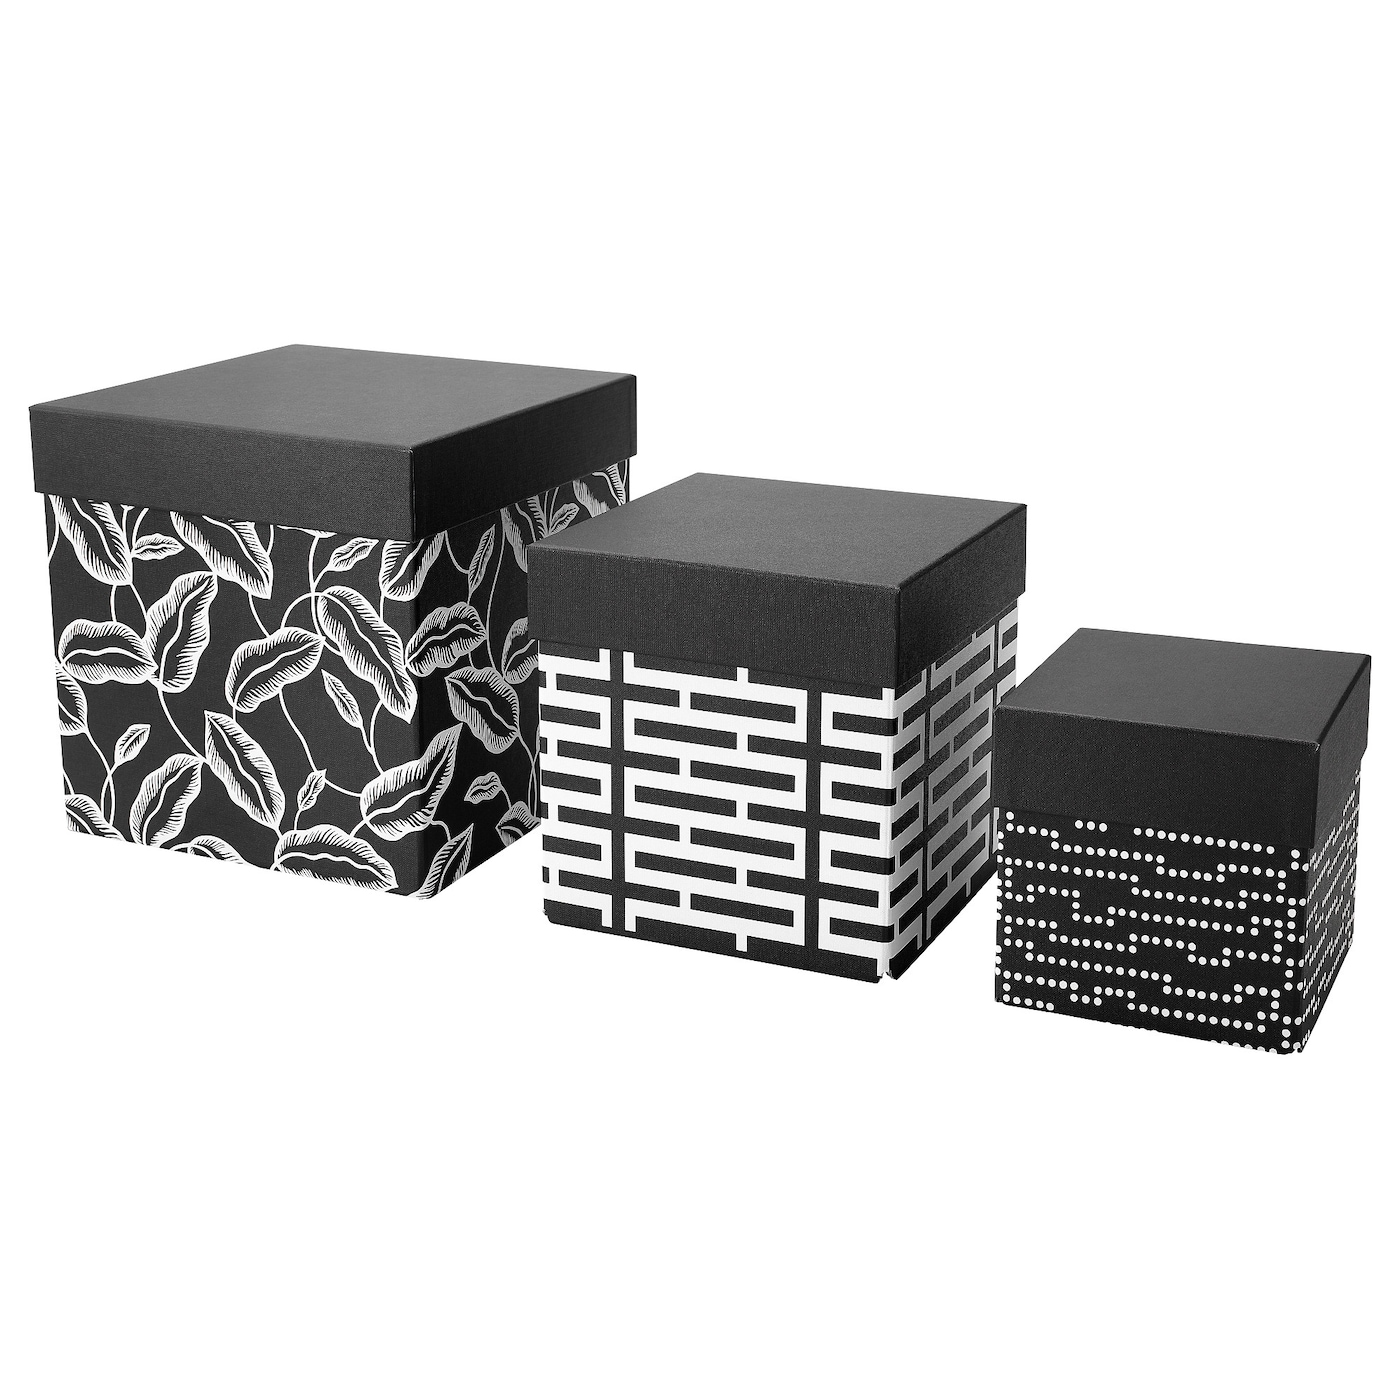 IKEA AVSIKTLIG box with lid, set of 3